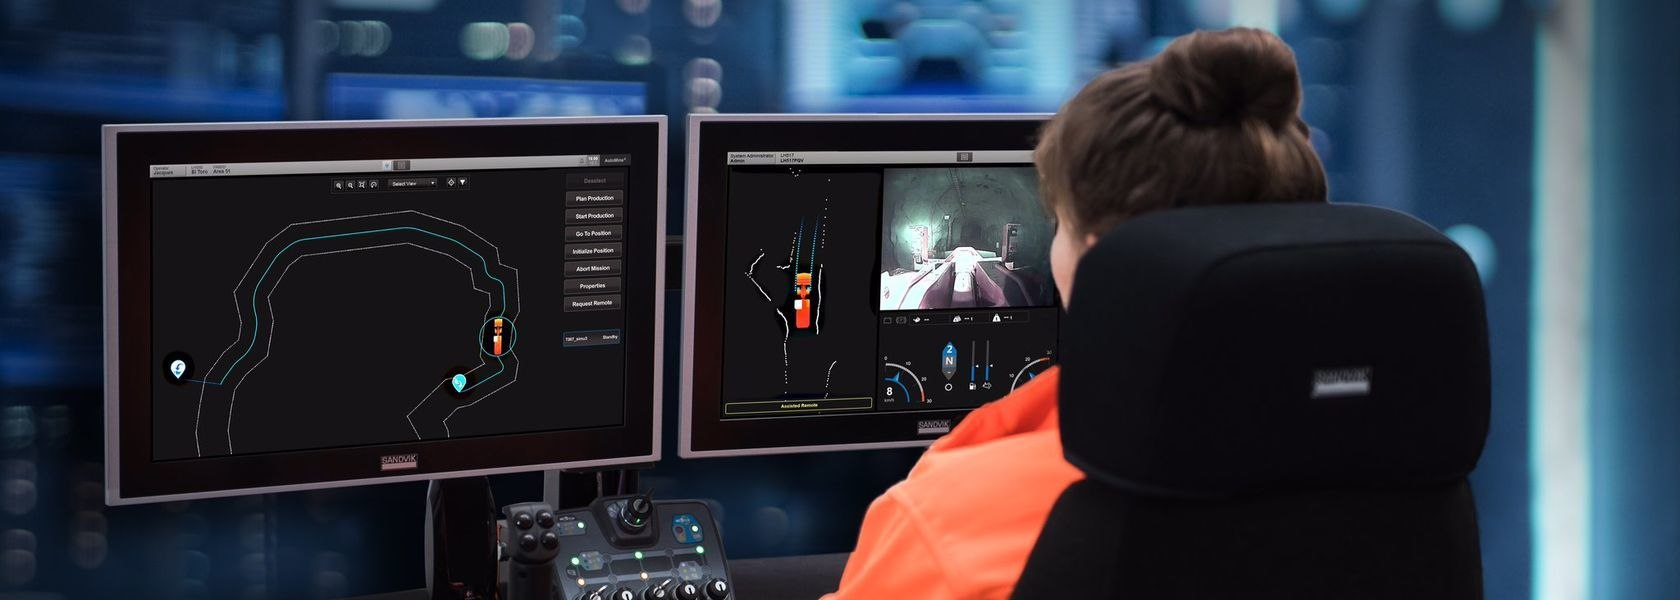 Sandvik boosts AutoMine interoperability